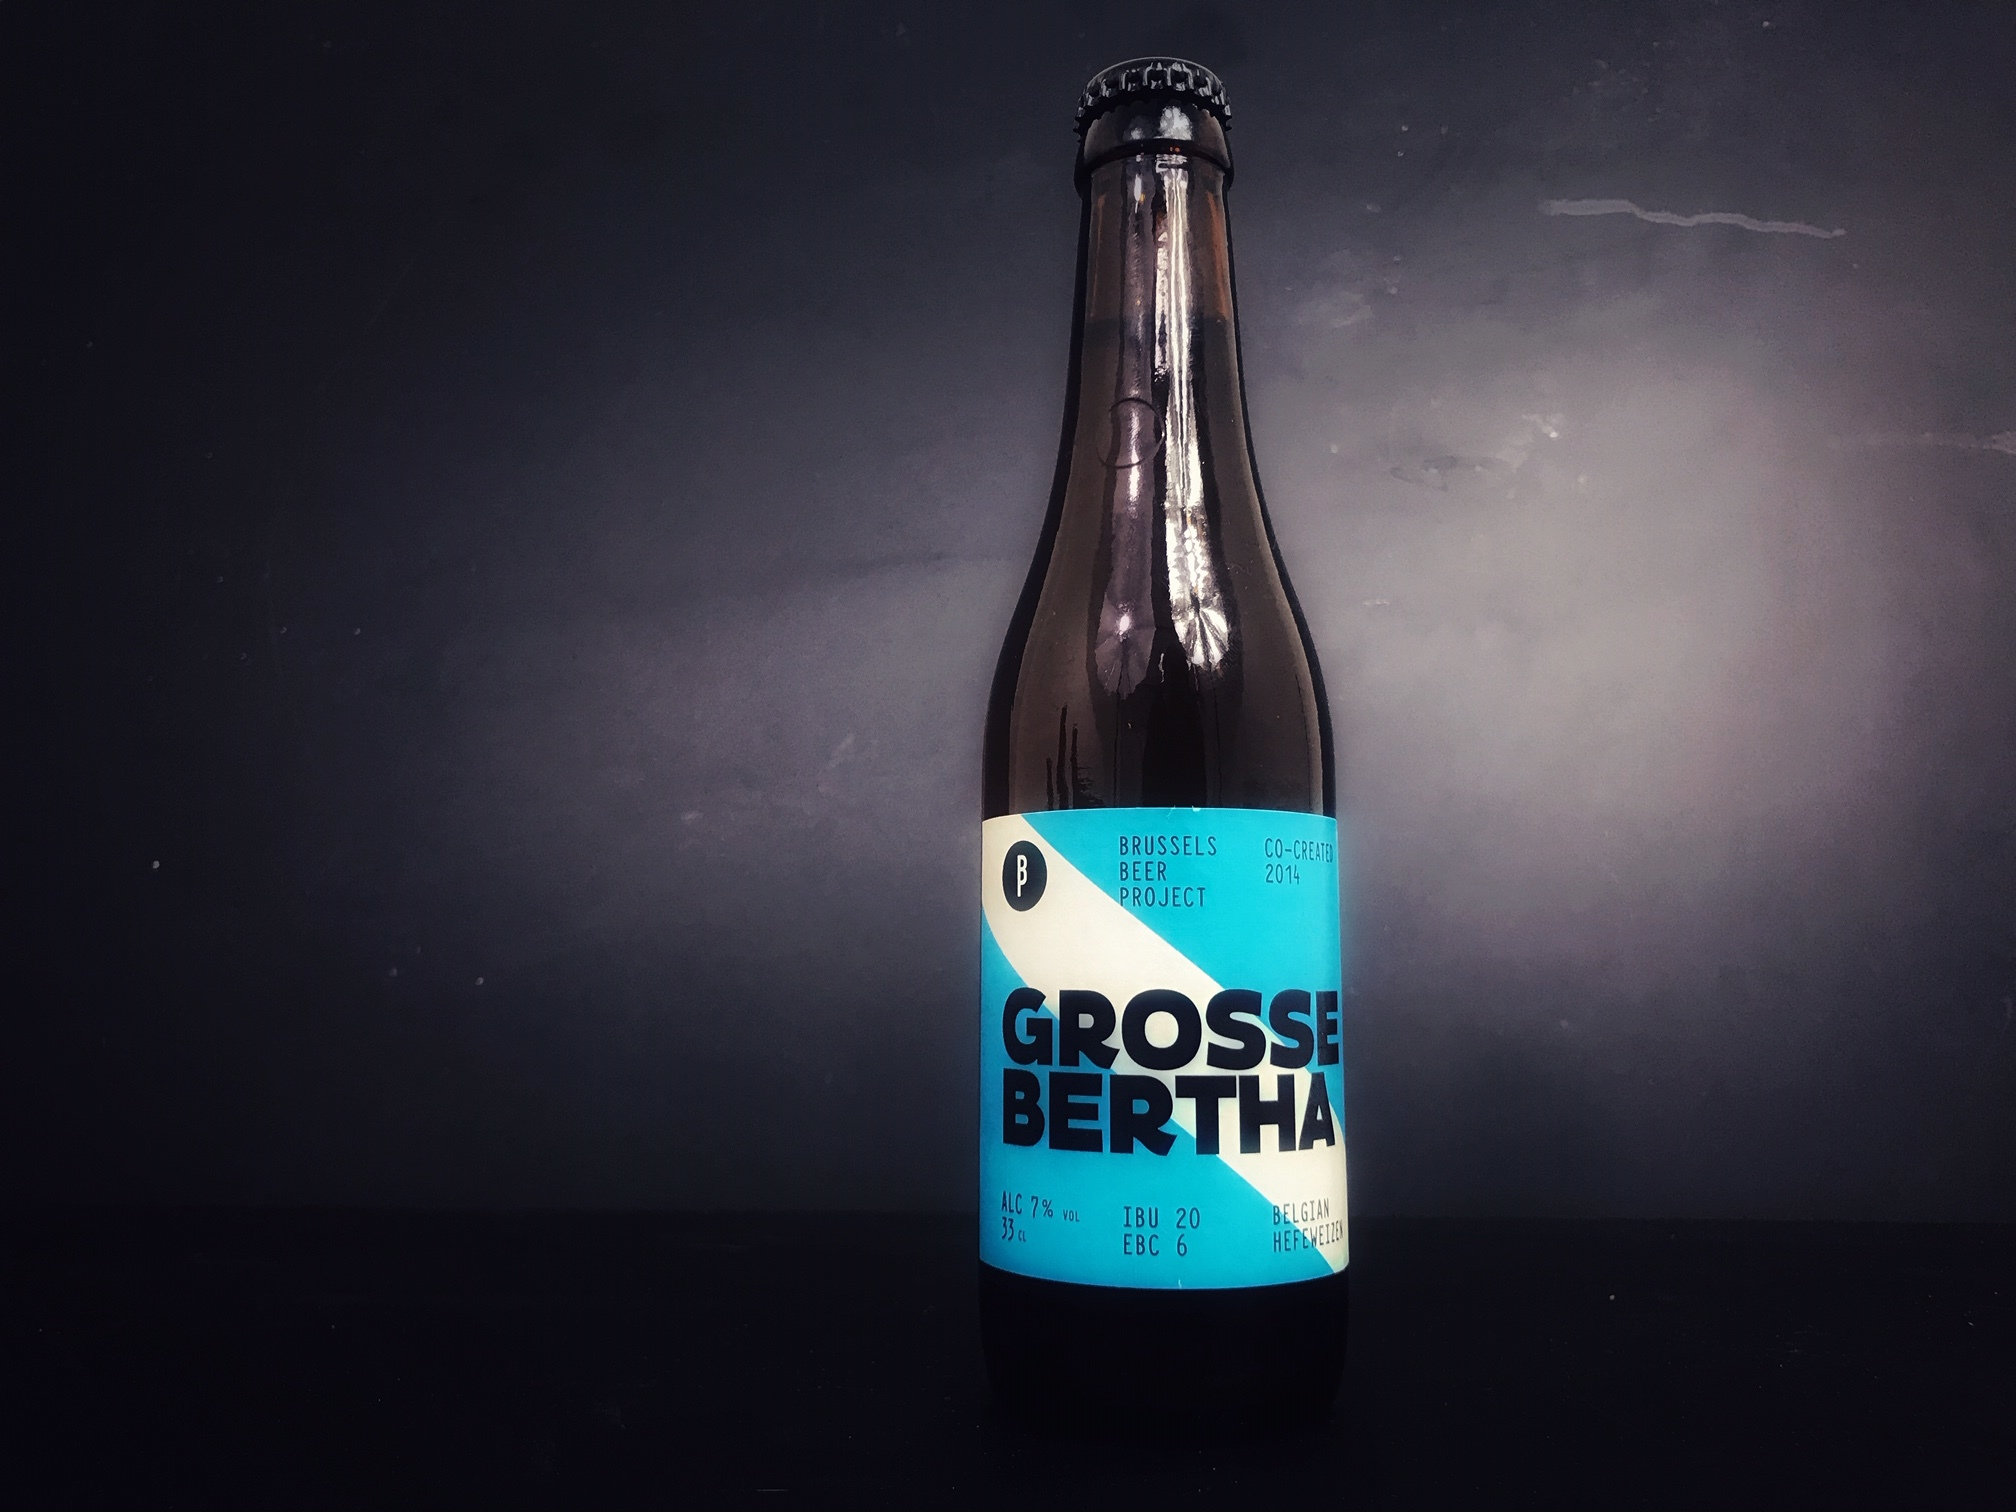 Grosse Bertha van Brussel Beer Project